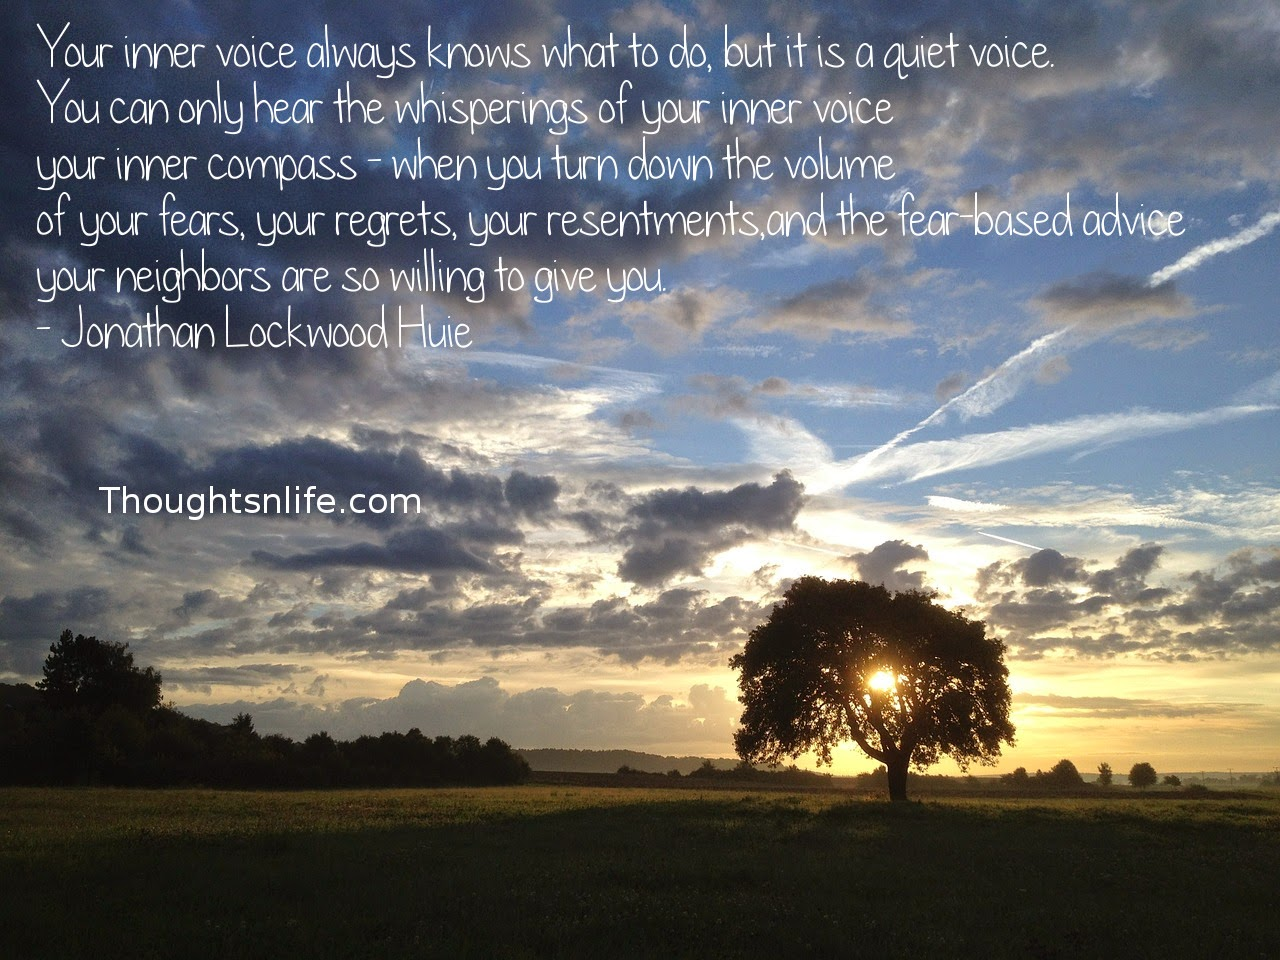 Thoughtsnlife.com: Your inner voice always knows what to do, but it is a quiet voice. You can only hear the whisperings of your inner voice - your inner compass - when you turn down the volume of your fears, your regrets, your resentments, and the fear-based advice your neighbors are so willing to give you. - Jonathan Lockwood Huie